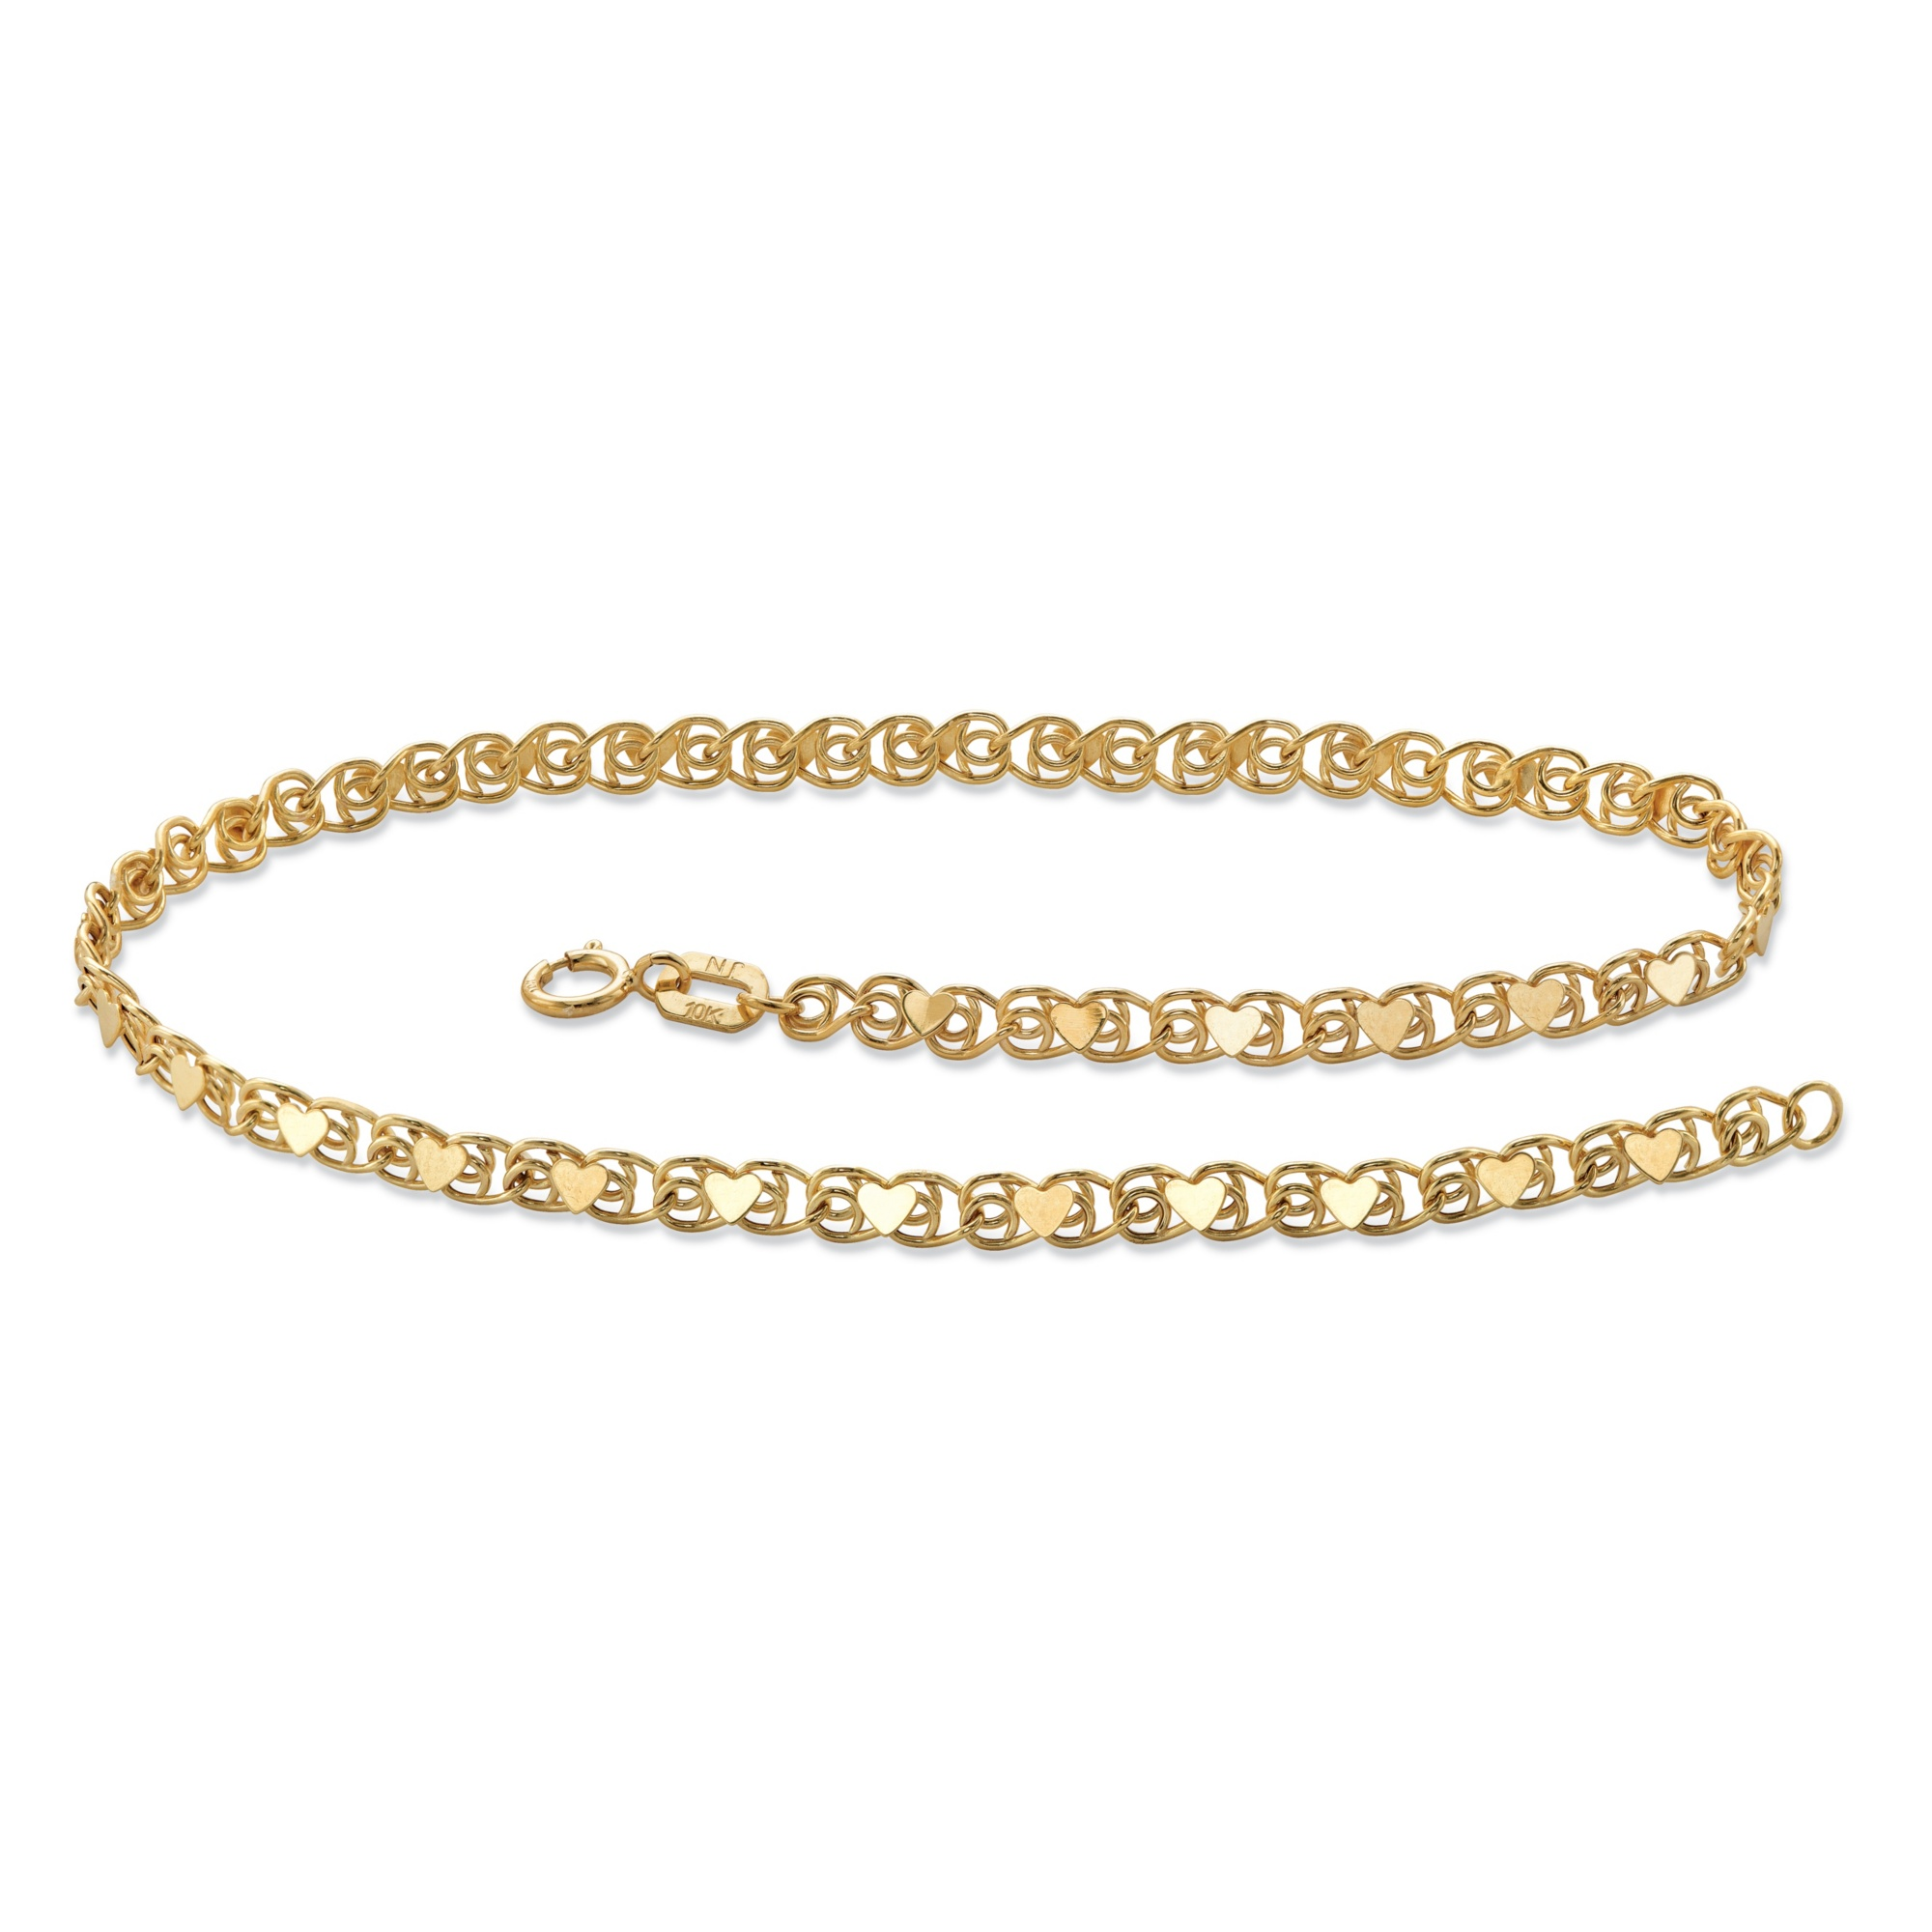 gold bhamini golden payal designs diamond american original buy anklet accessories designers online jewellery delicate